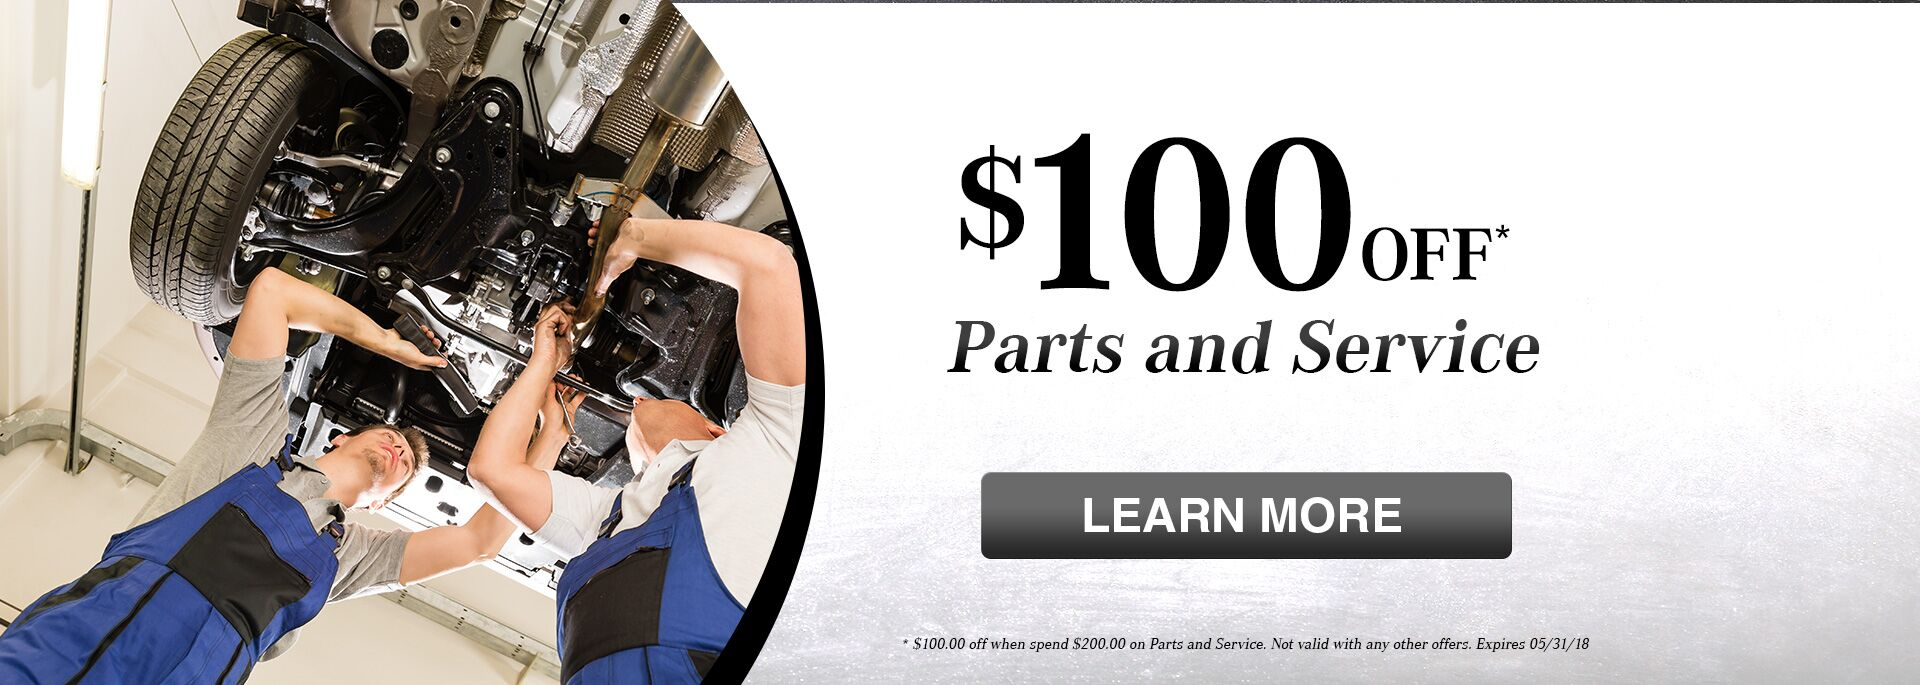 Parts and Service $100 off